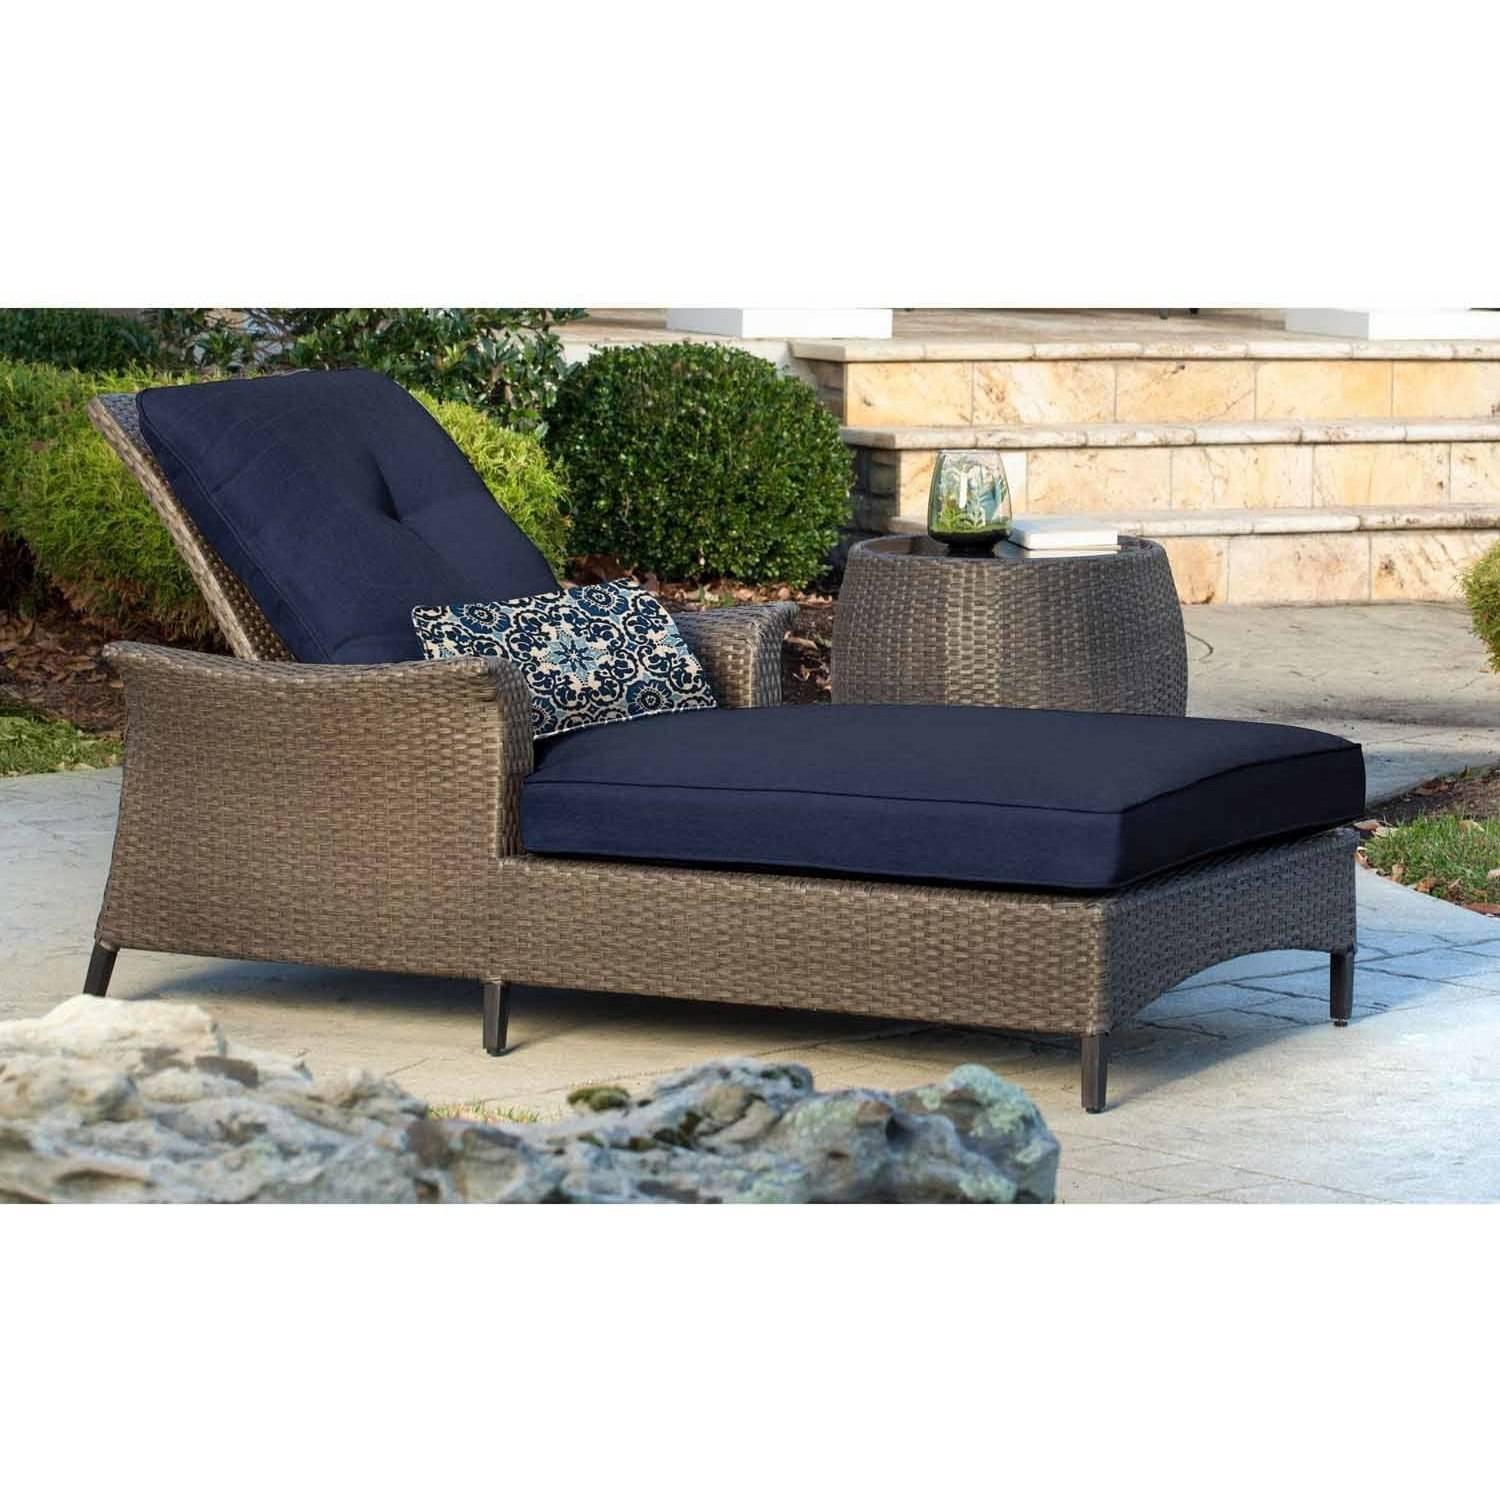 Hanover Outdoor Gramercy 2-Piece Chaise Lounge Set by Hanover Outdoor